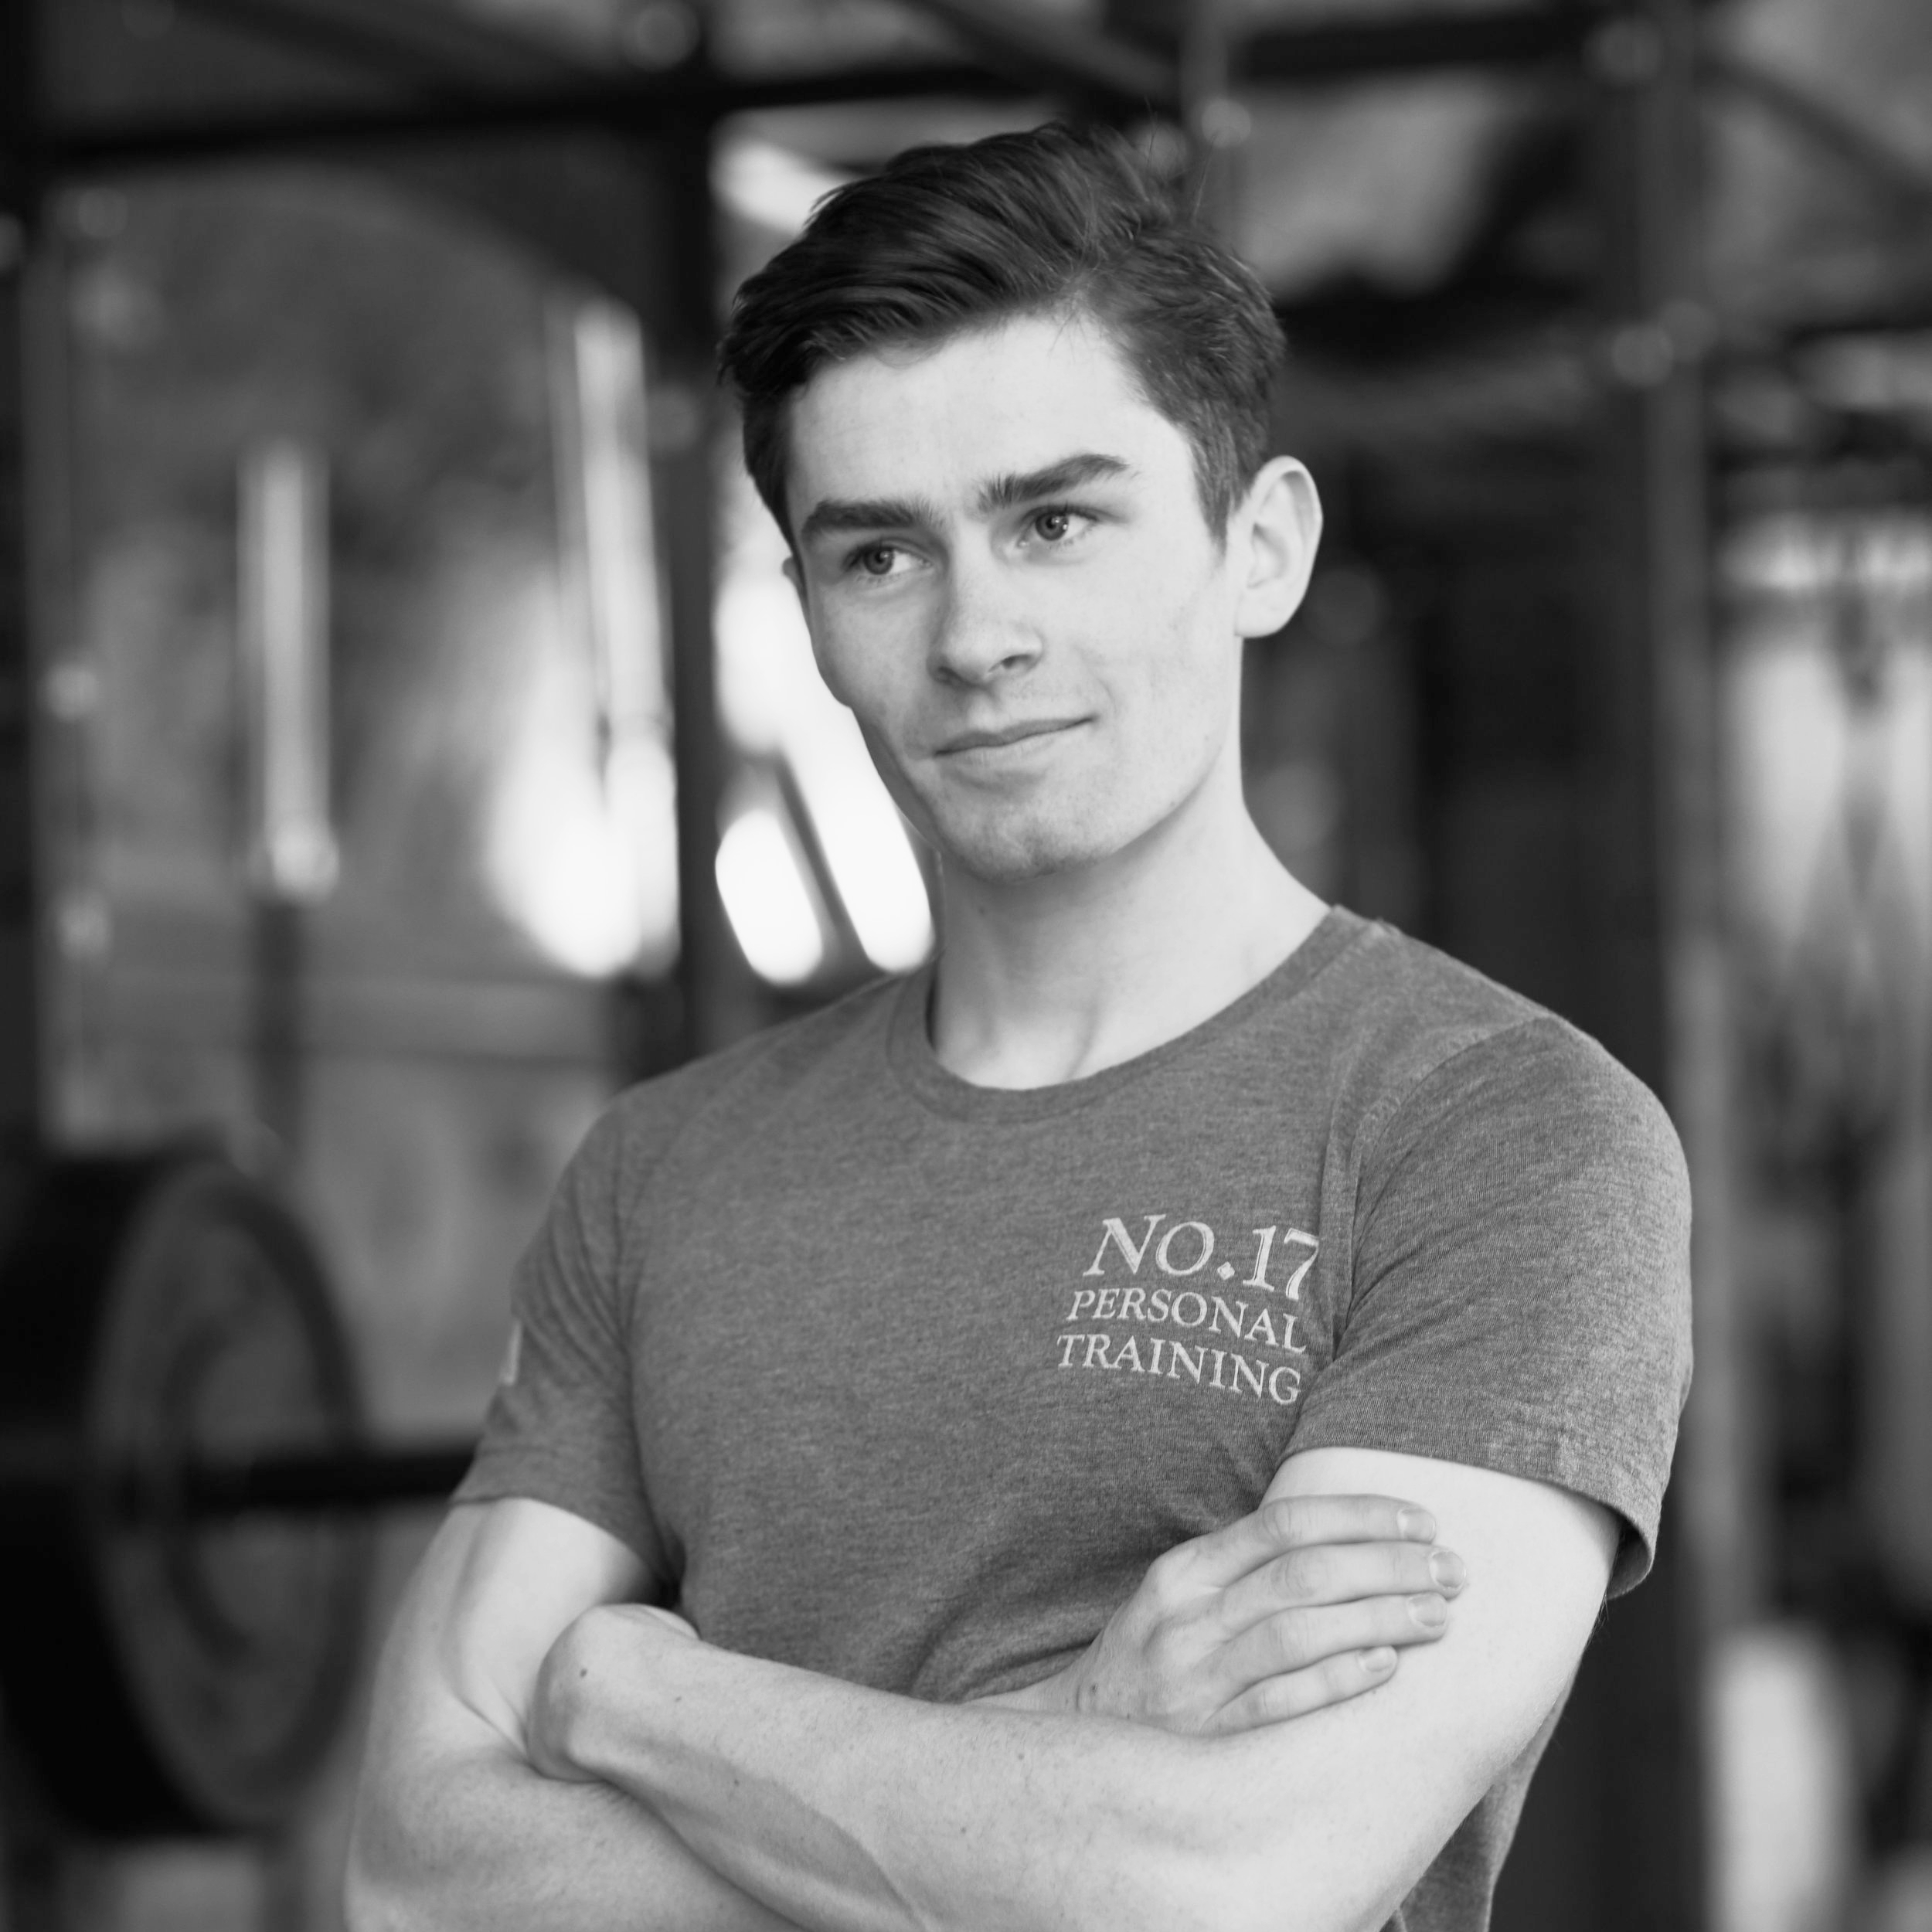 LIAM BELTON  Whether he's holding the pads for a boxing session or coaching an Olympic lift, Liam is a talented instructor who brings out the best of his clients'. His own interests in fitness are well-rounded, from track to his impressive gymnastic and calisthenic skills.